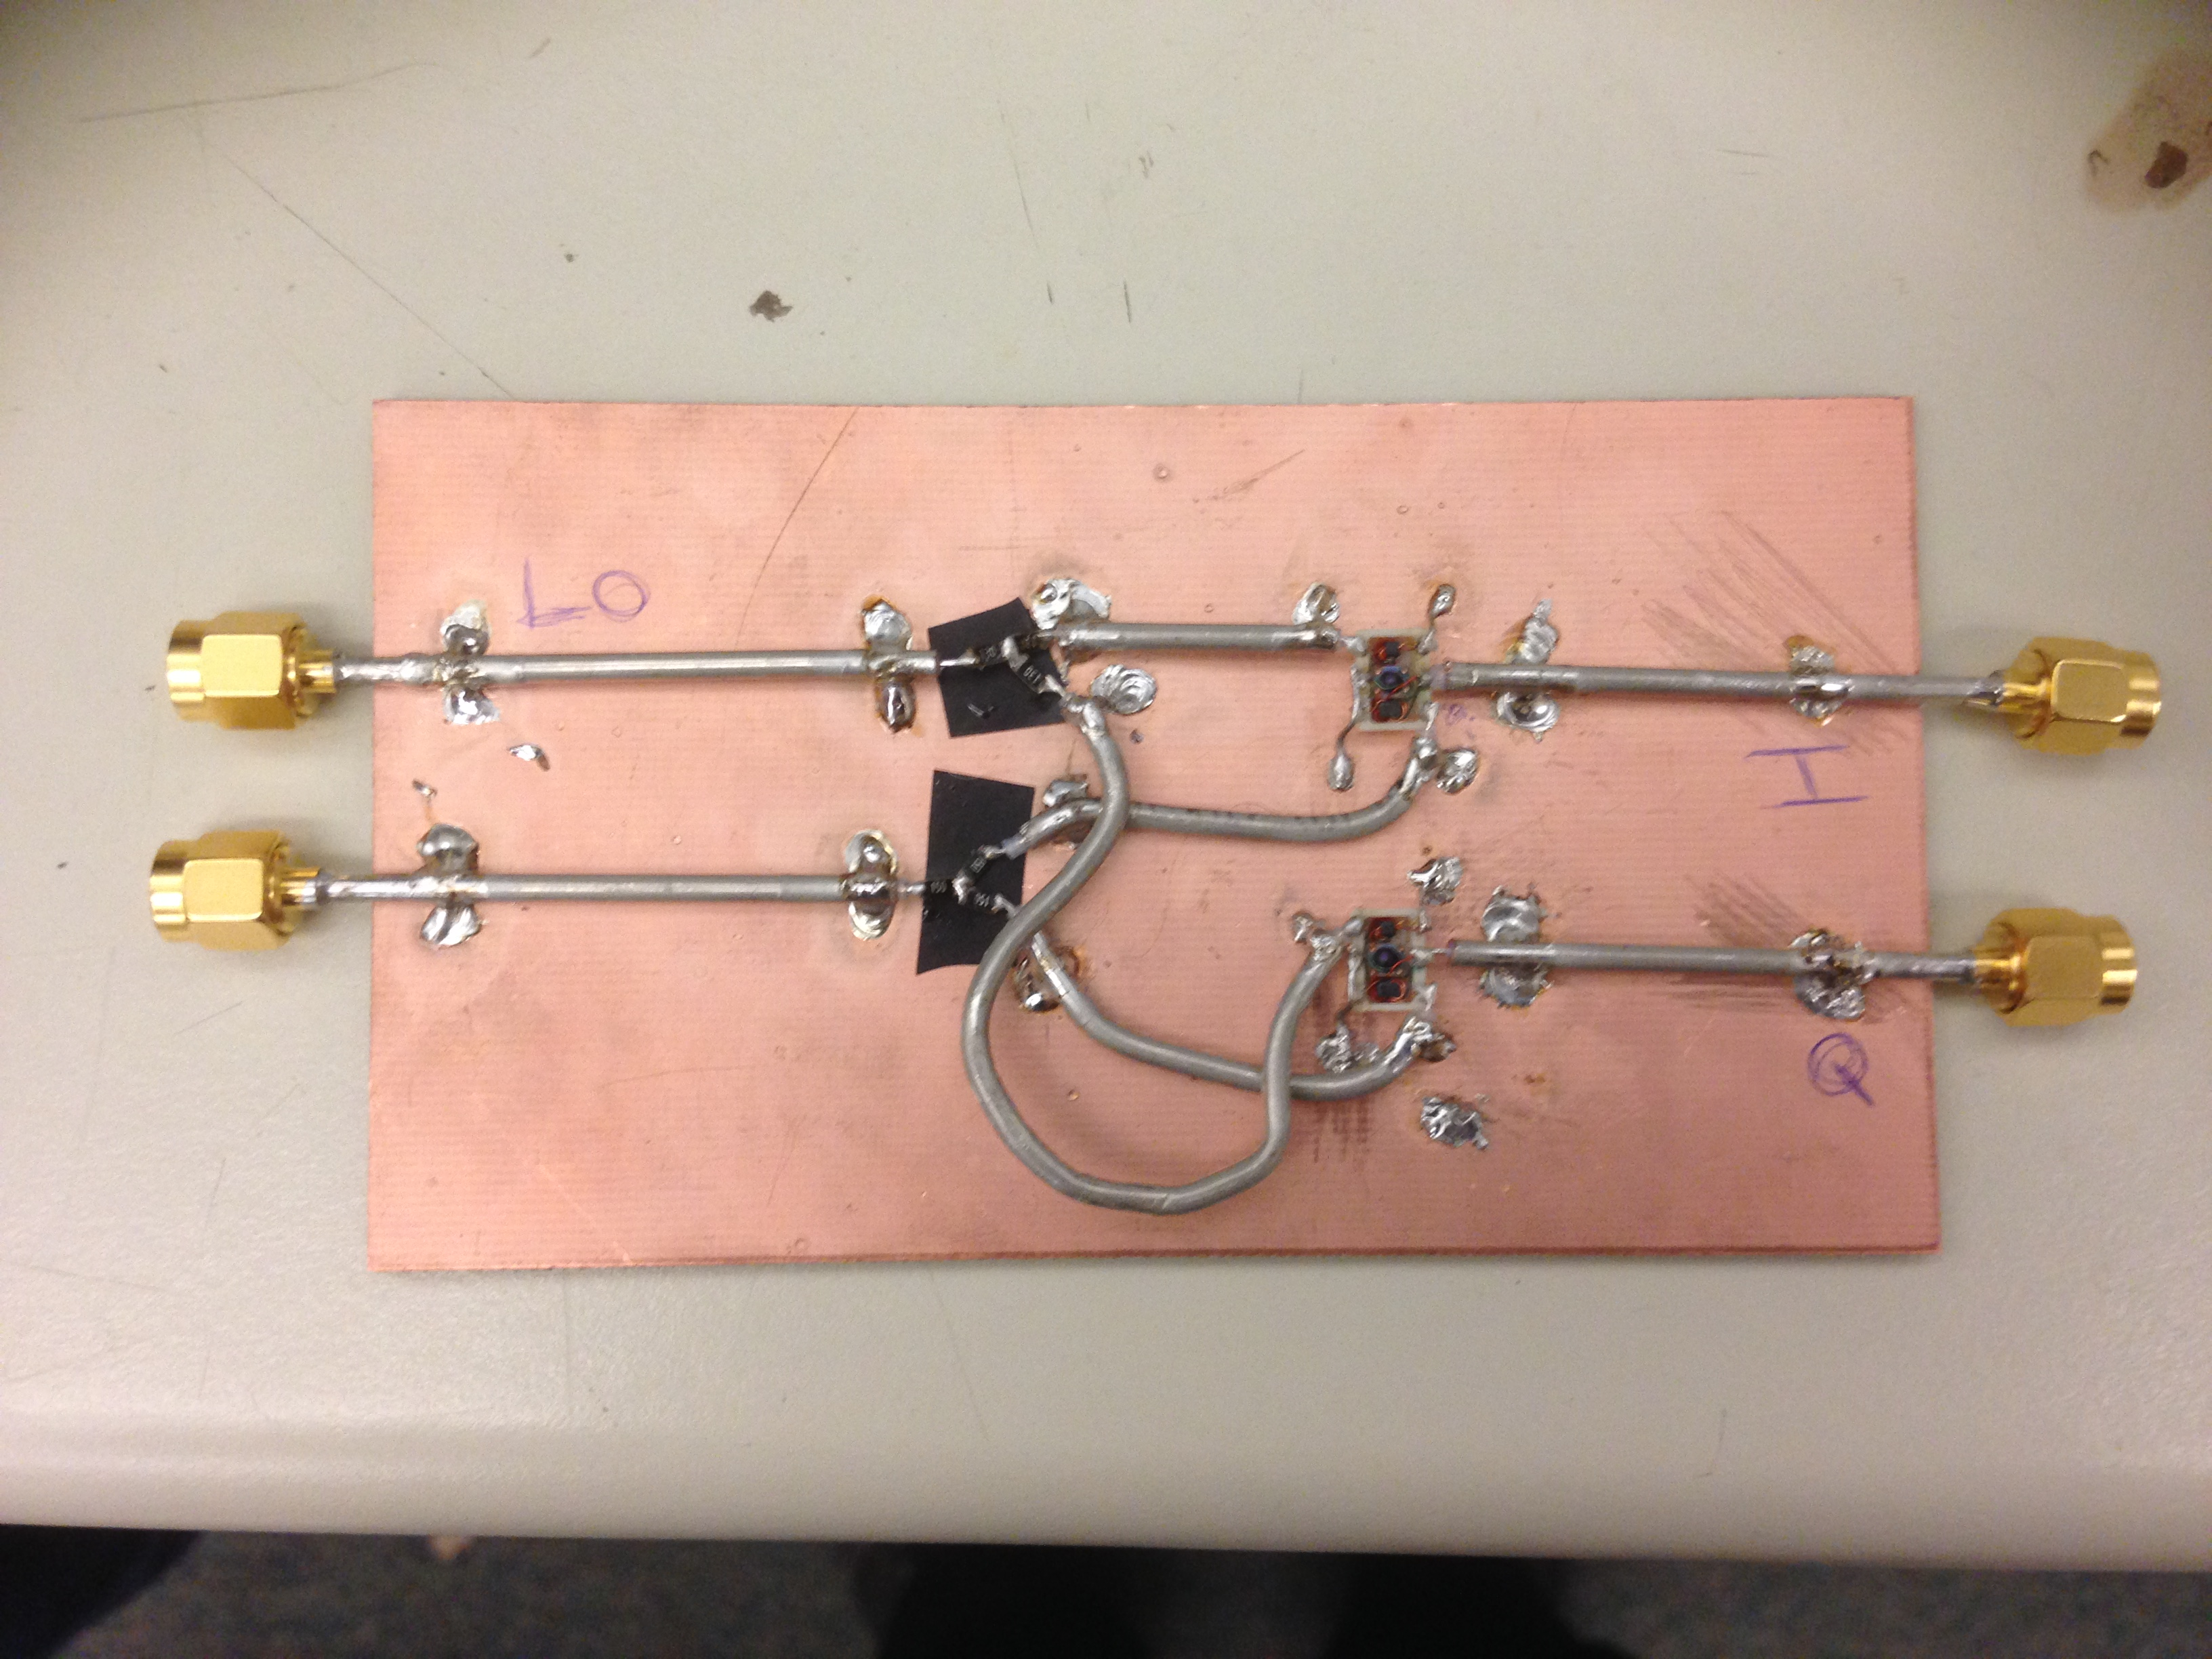 This is an IQ modulator students built in EE456